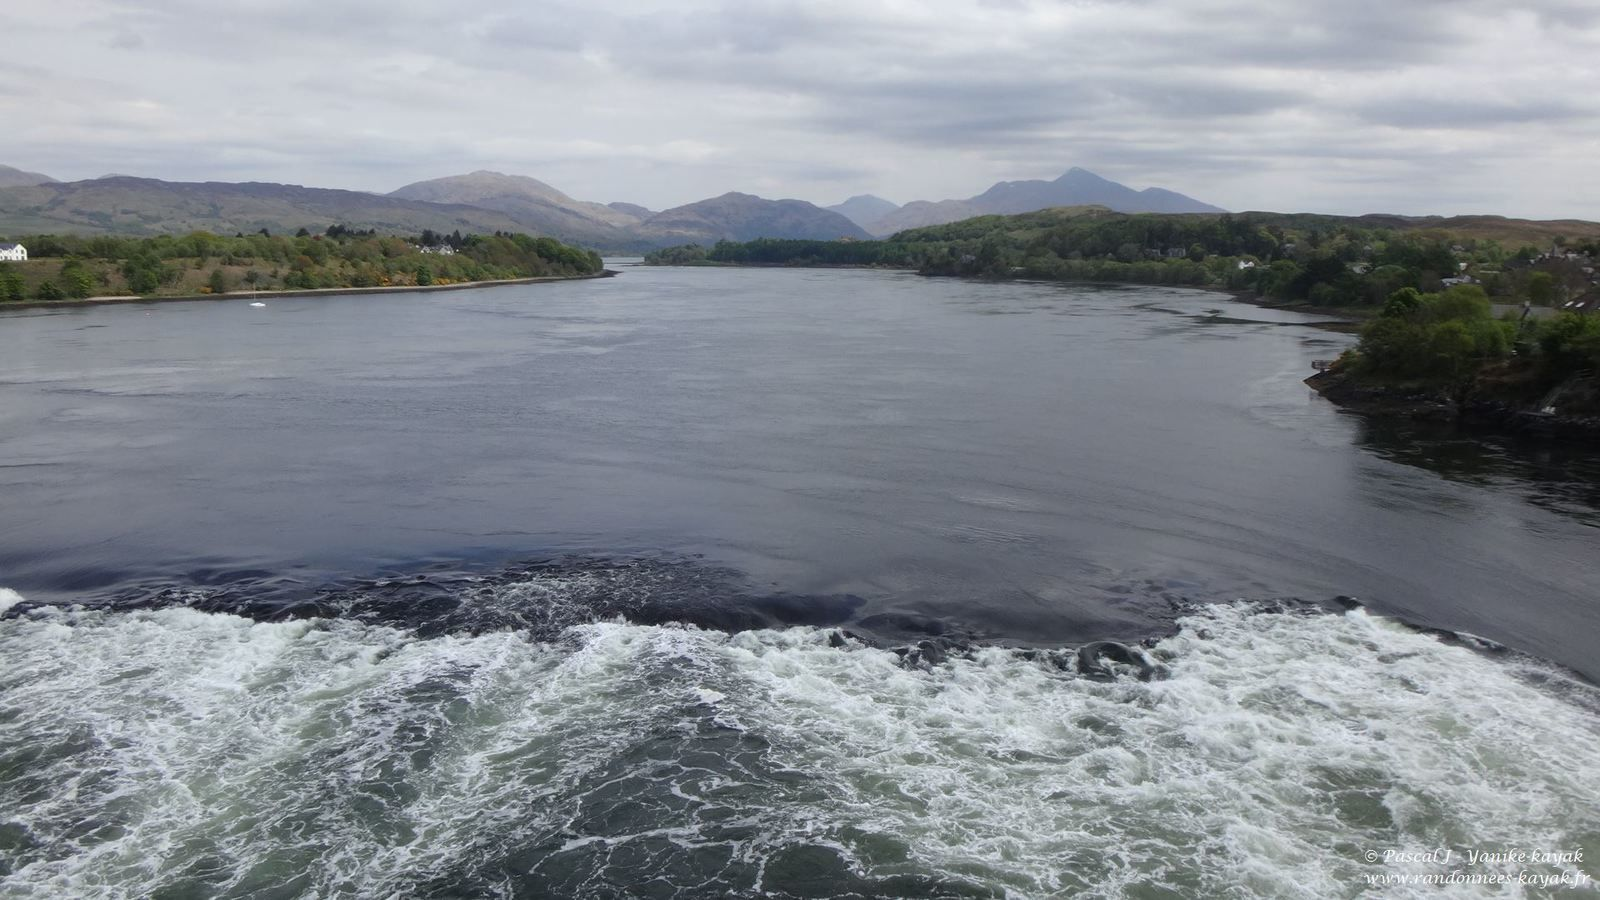 Skye 2018 : a new adventure - Chapitre 8 : Back to Home; Falls of Lora